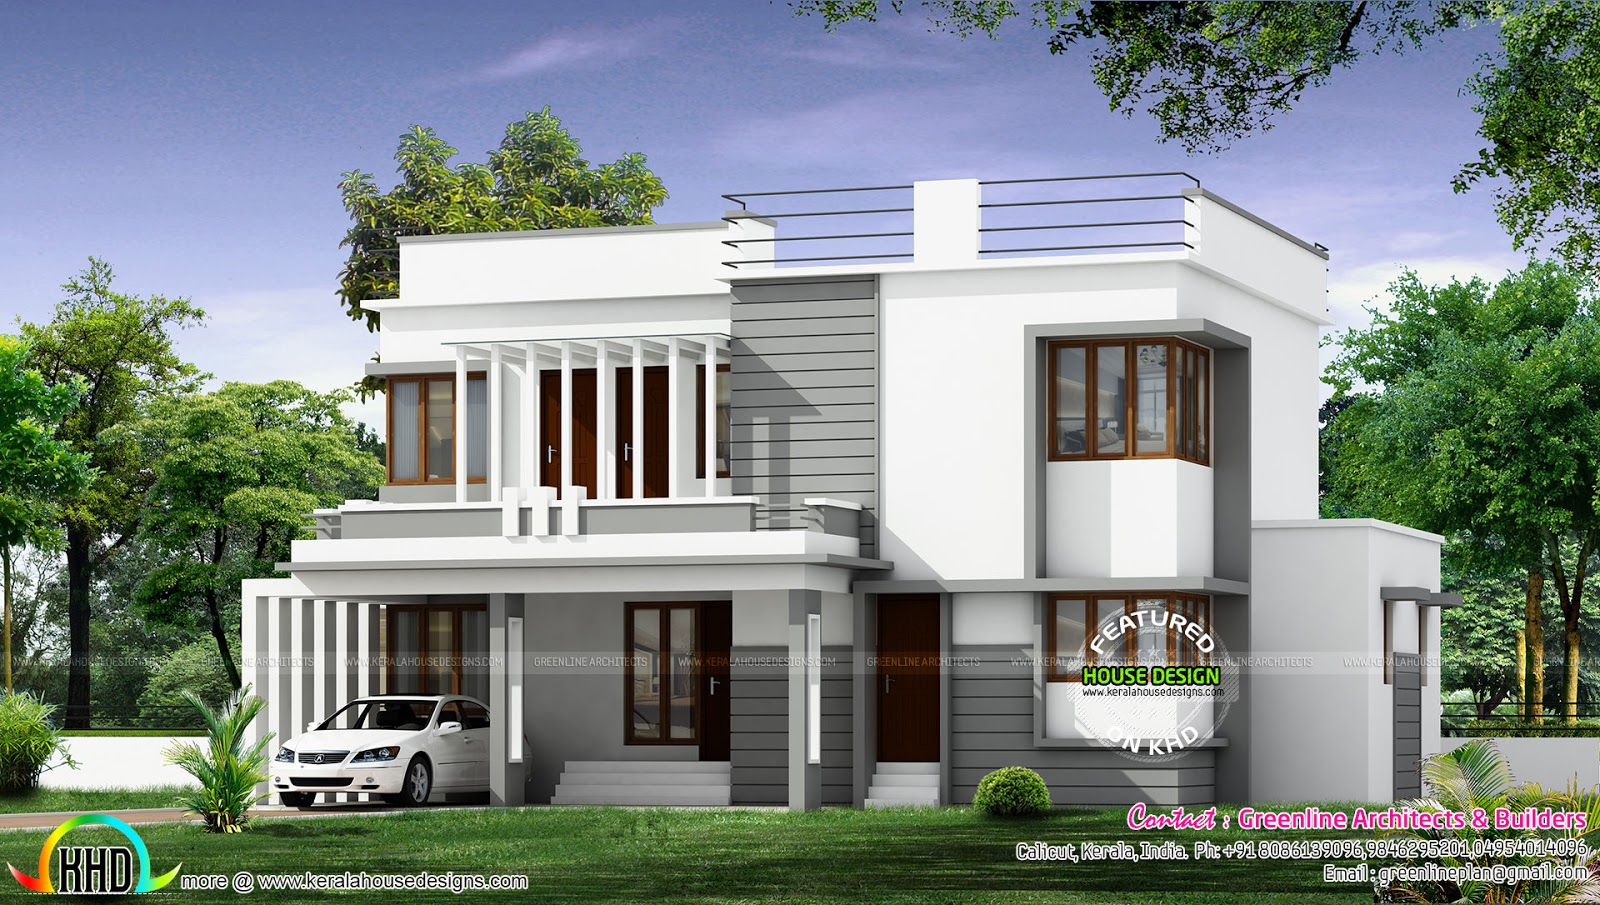 New modern house architecture kerala home design and for New design home plans